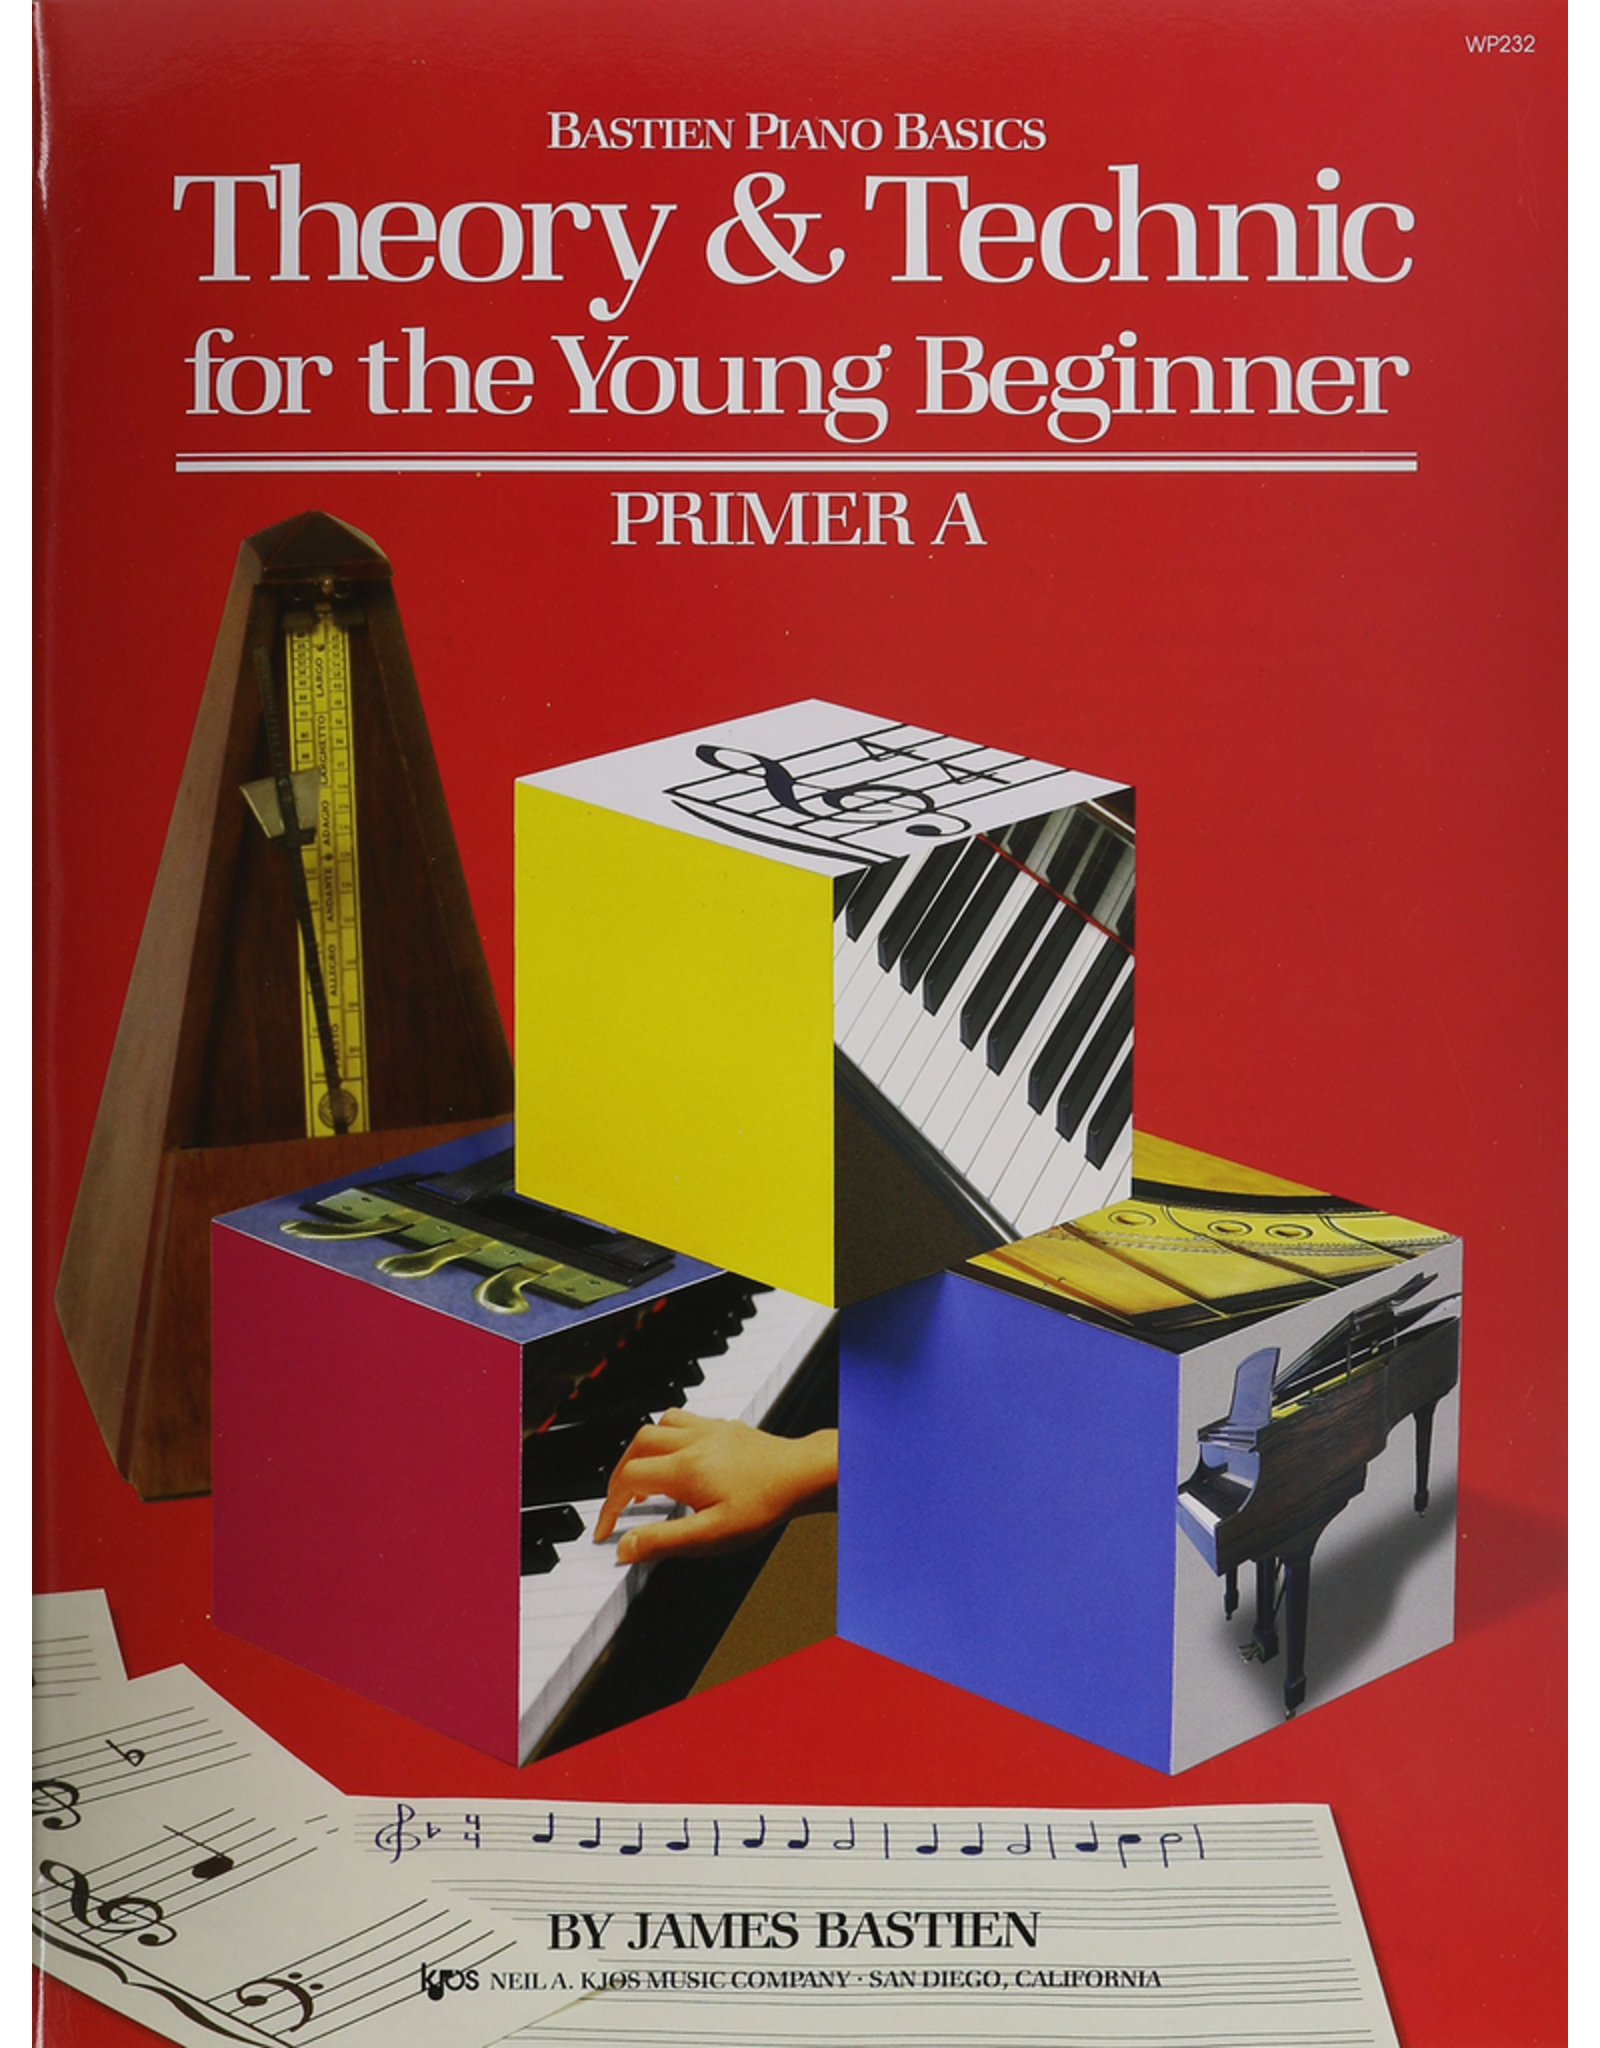 Kjos Bastien Piano Basics Theory & Technic for the Young Beginner, Primer A